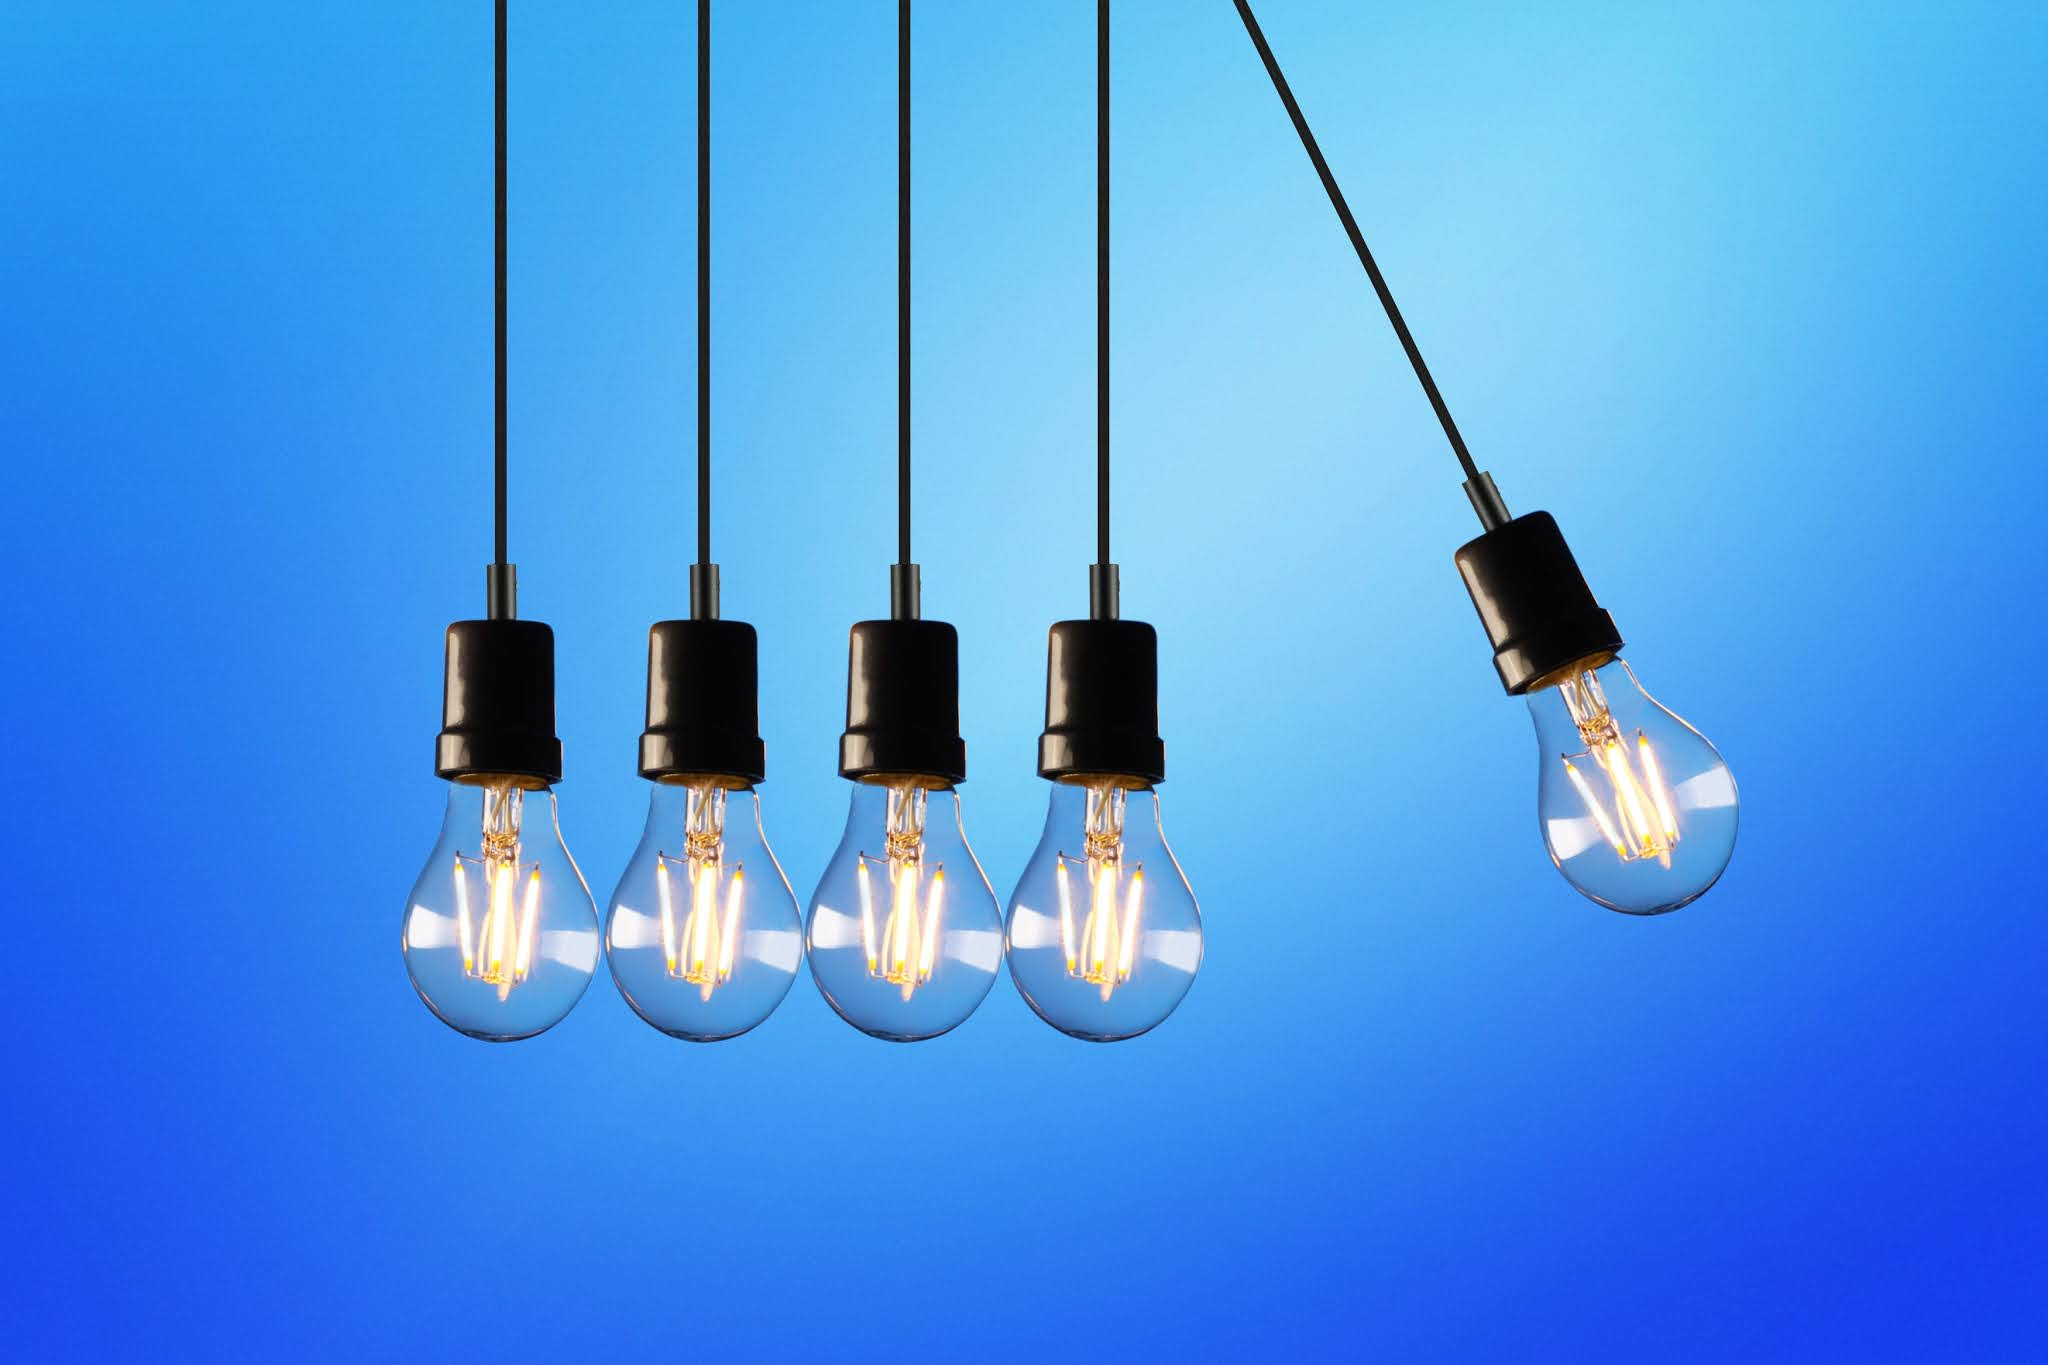 four lightbulbs hanging in a row with one lightbulb swinging to the right away from the line of lightbulbs